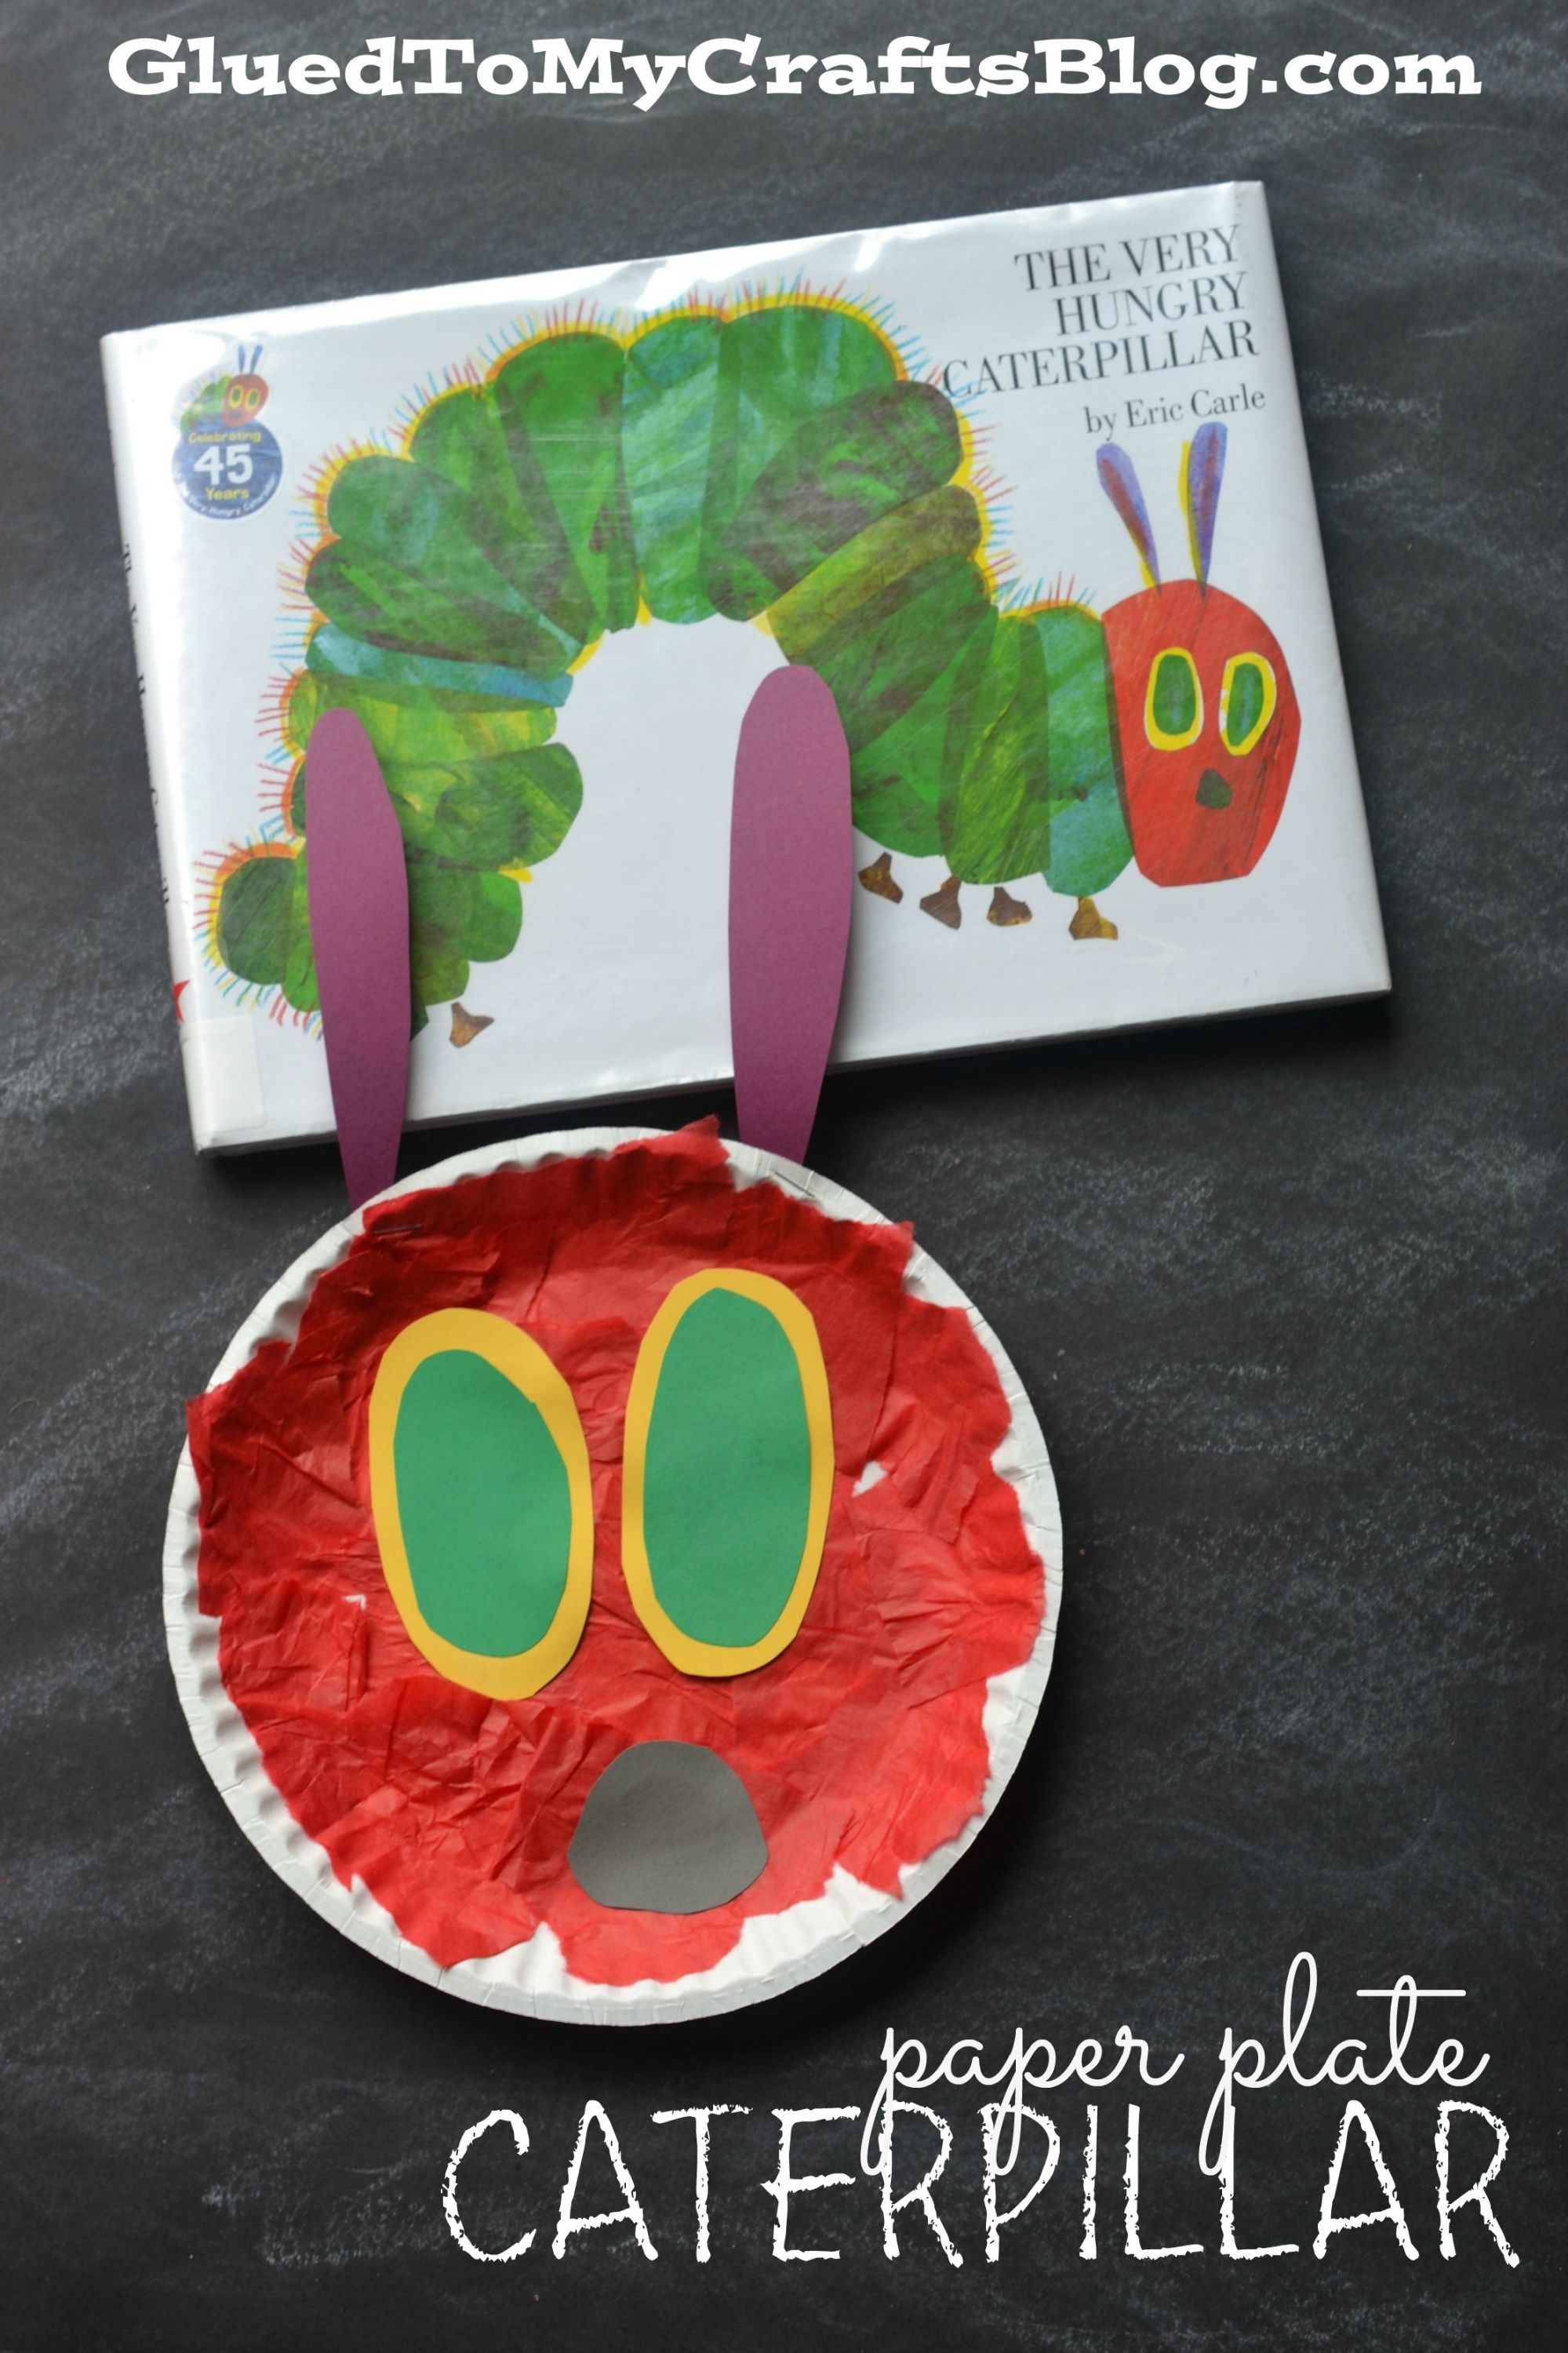 The Very Hungry Caterpillar Lends Itself Well To Sequencing Activities Sequence Events